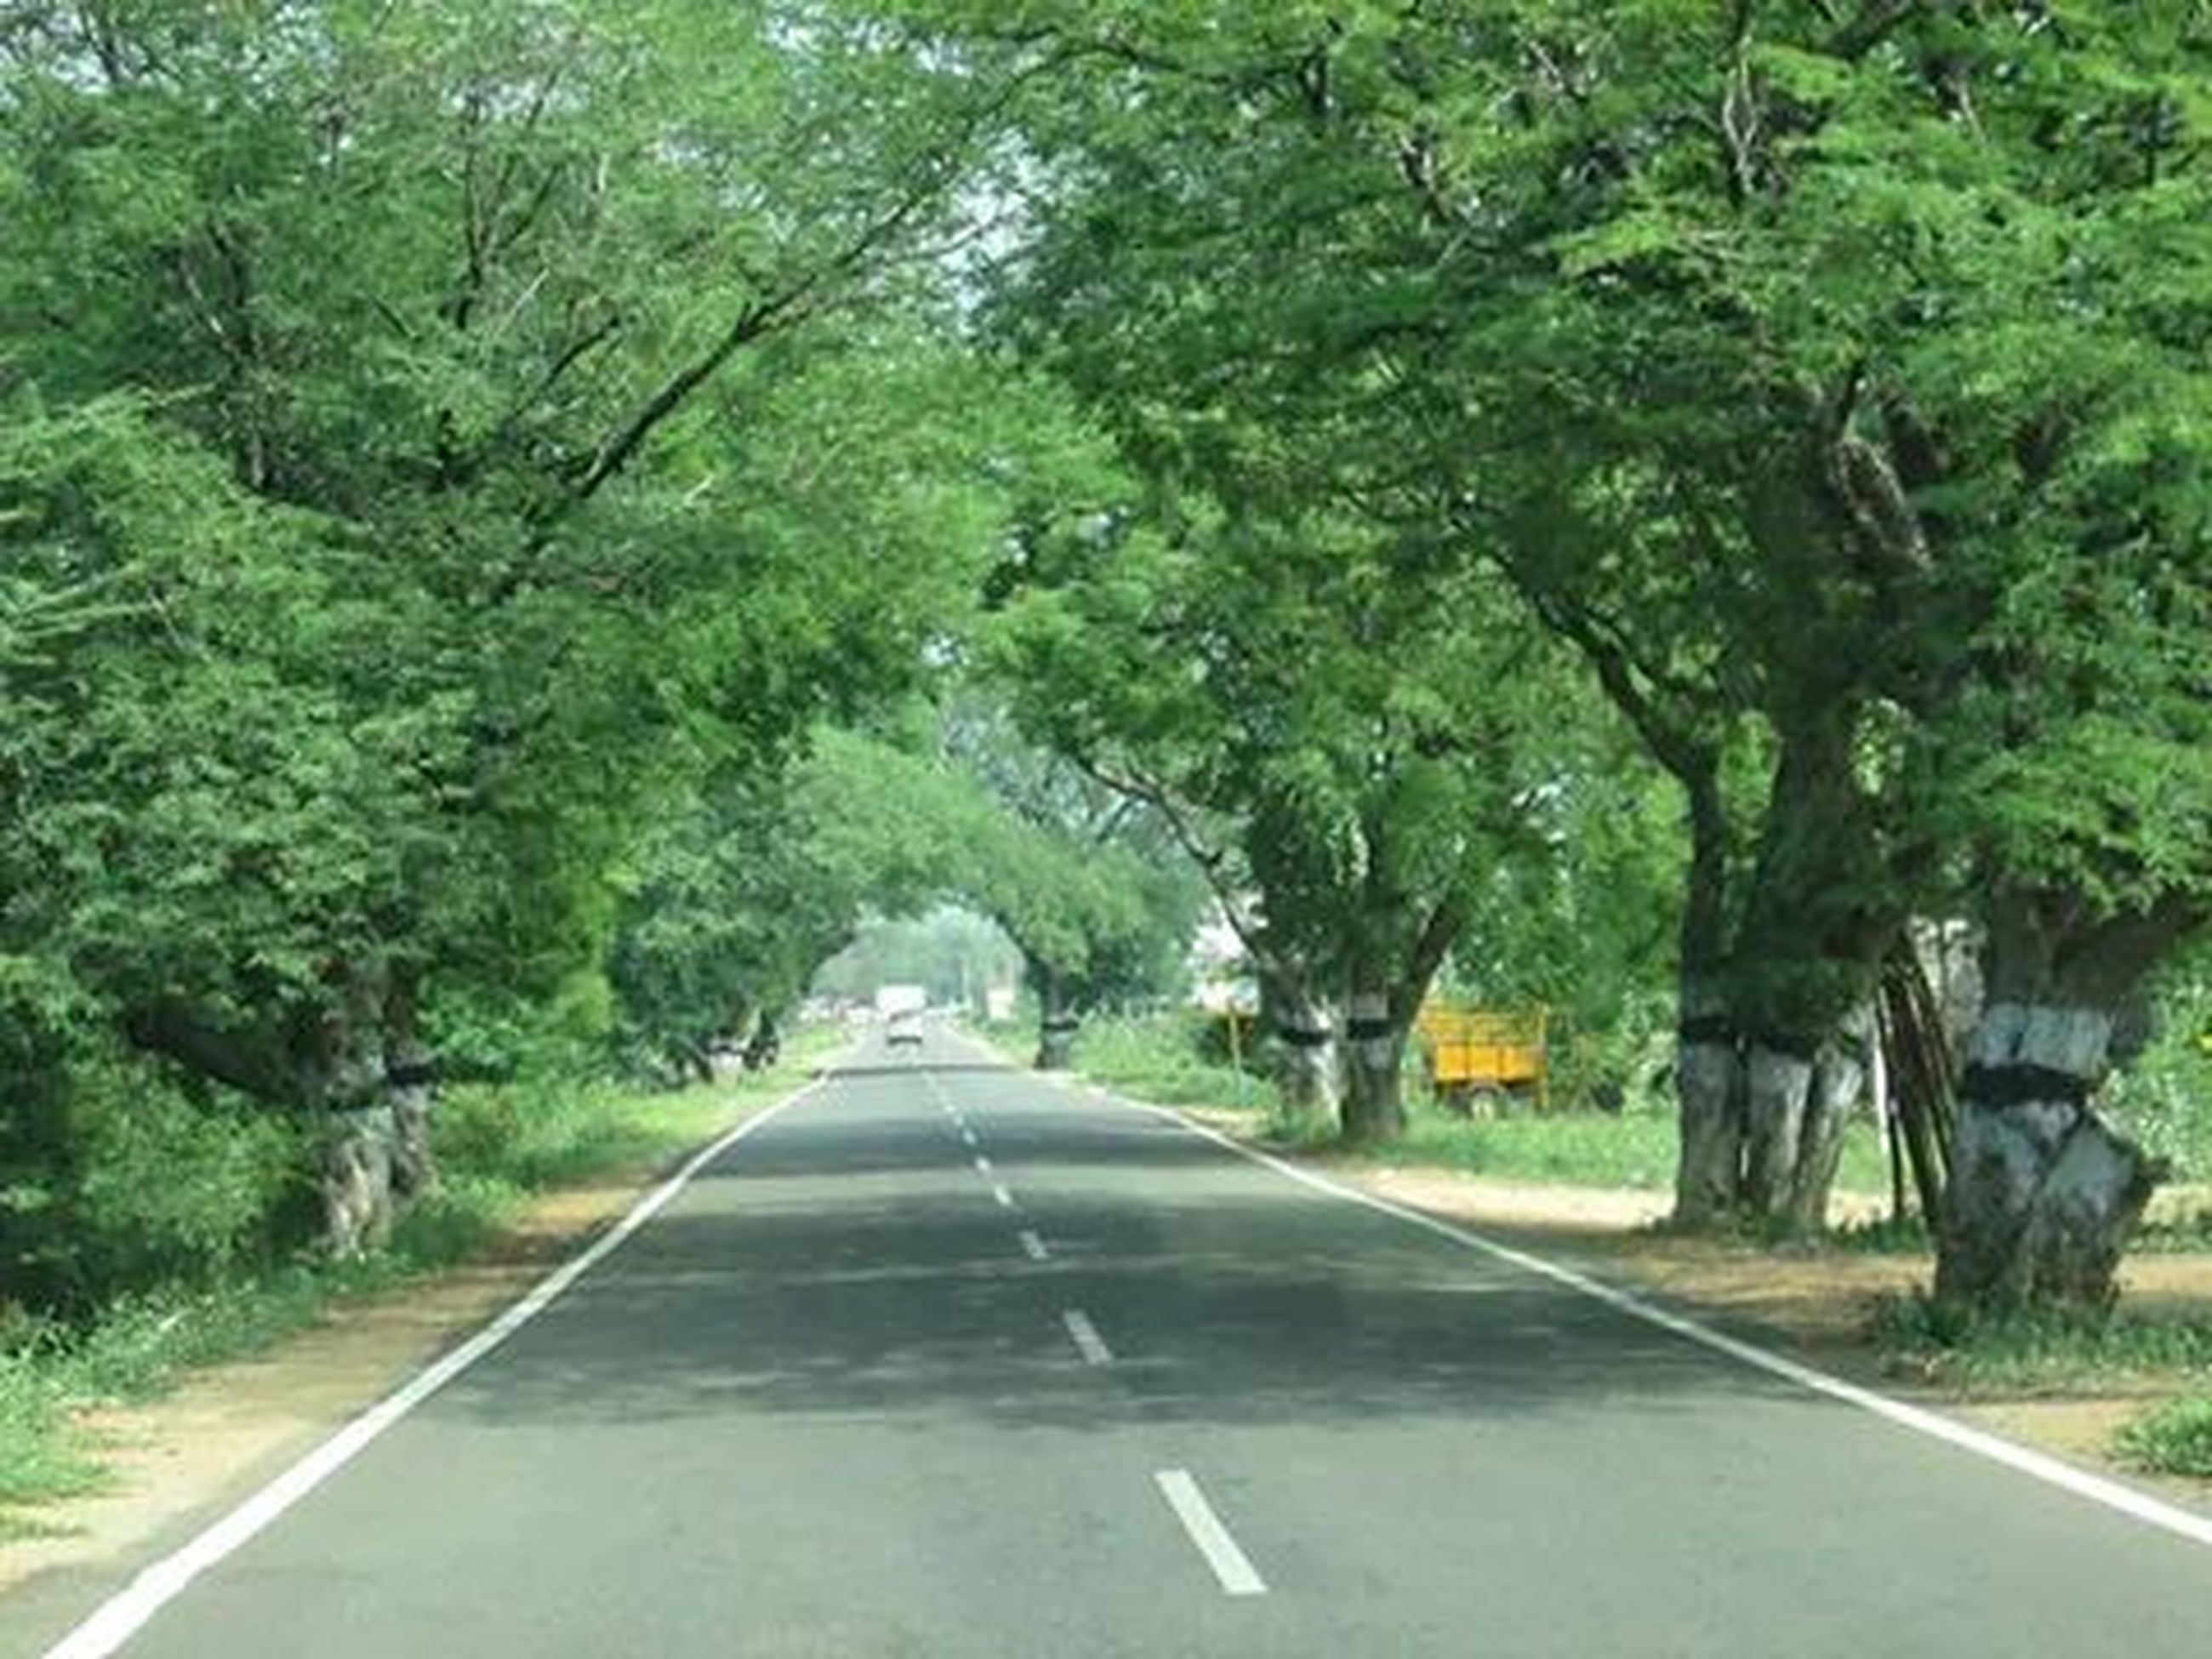 the way forward, transportation, road, tree, road marking, diminishing perspective, vanishing point, country road, empty road, asphalt, empty, growth, car, mode of transport, green color, day, nature, street, land vehicle, tranquility